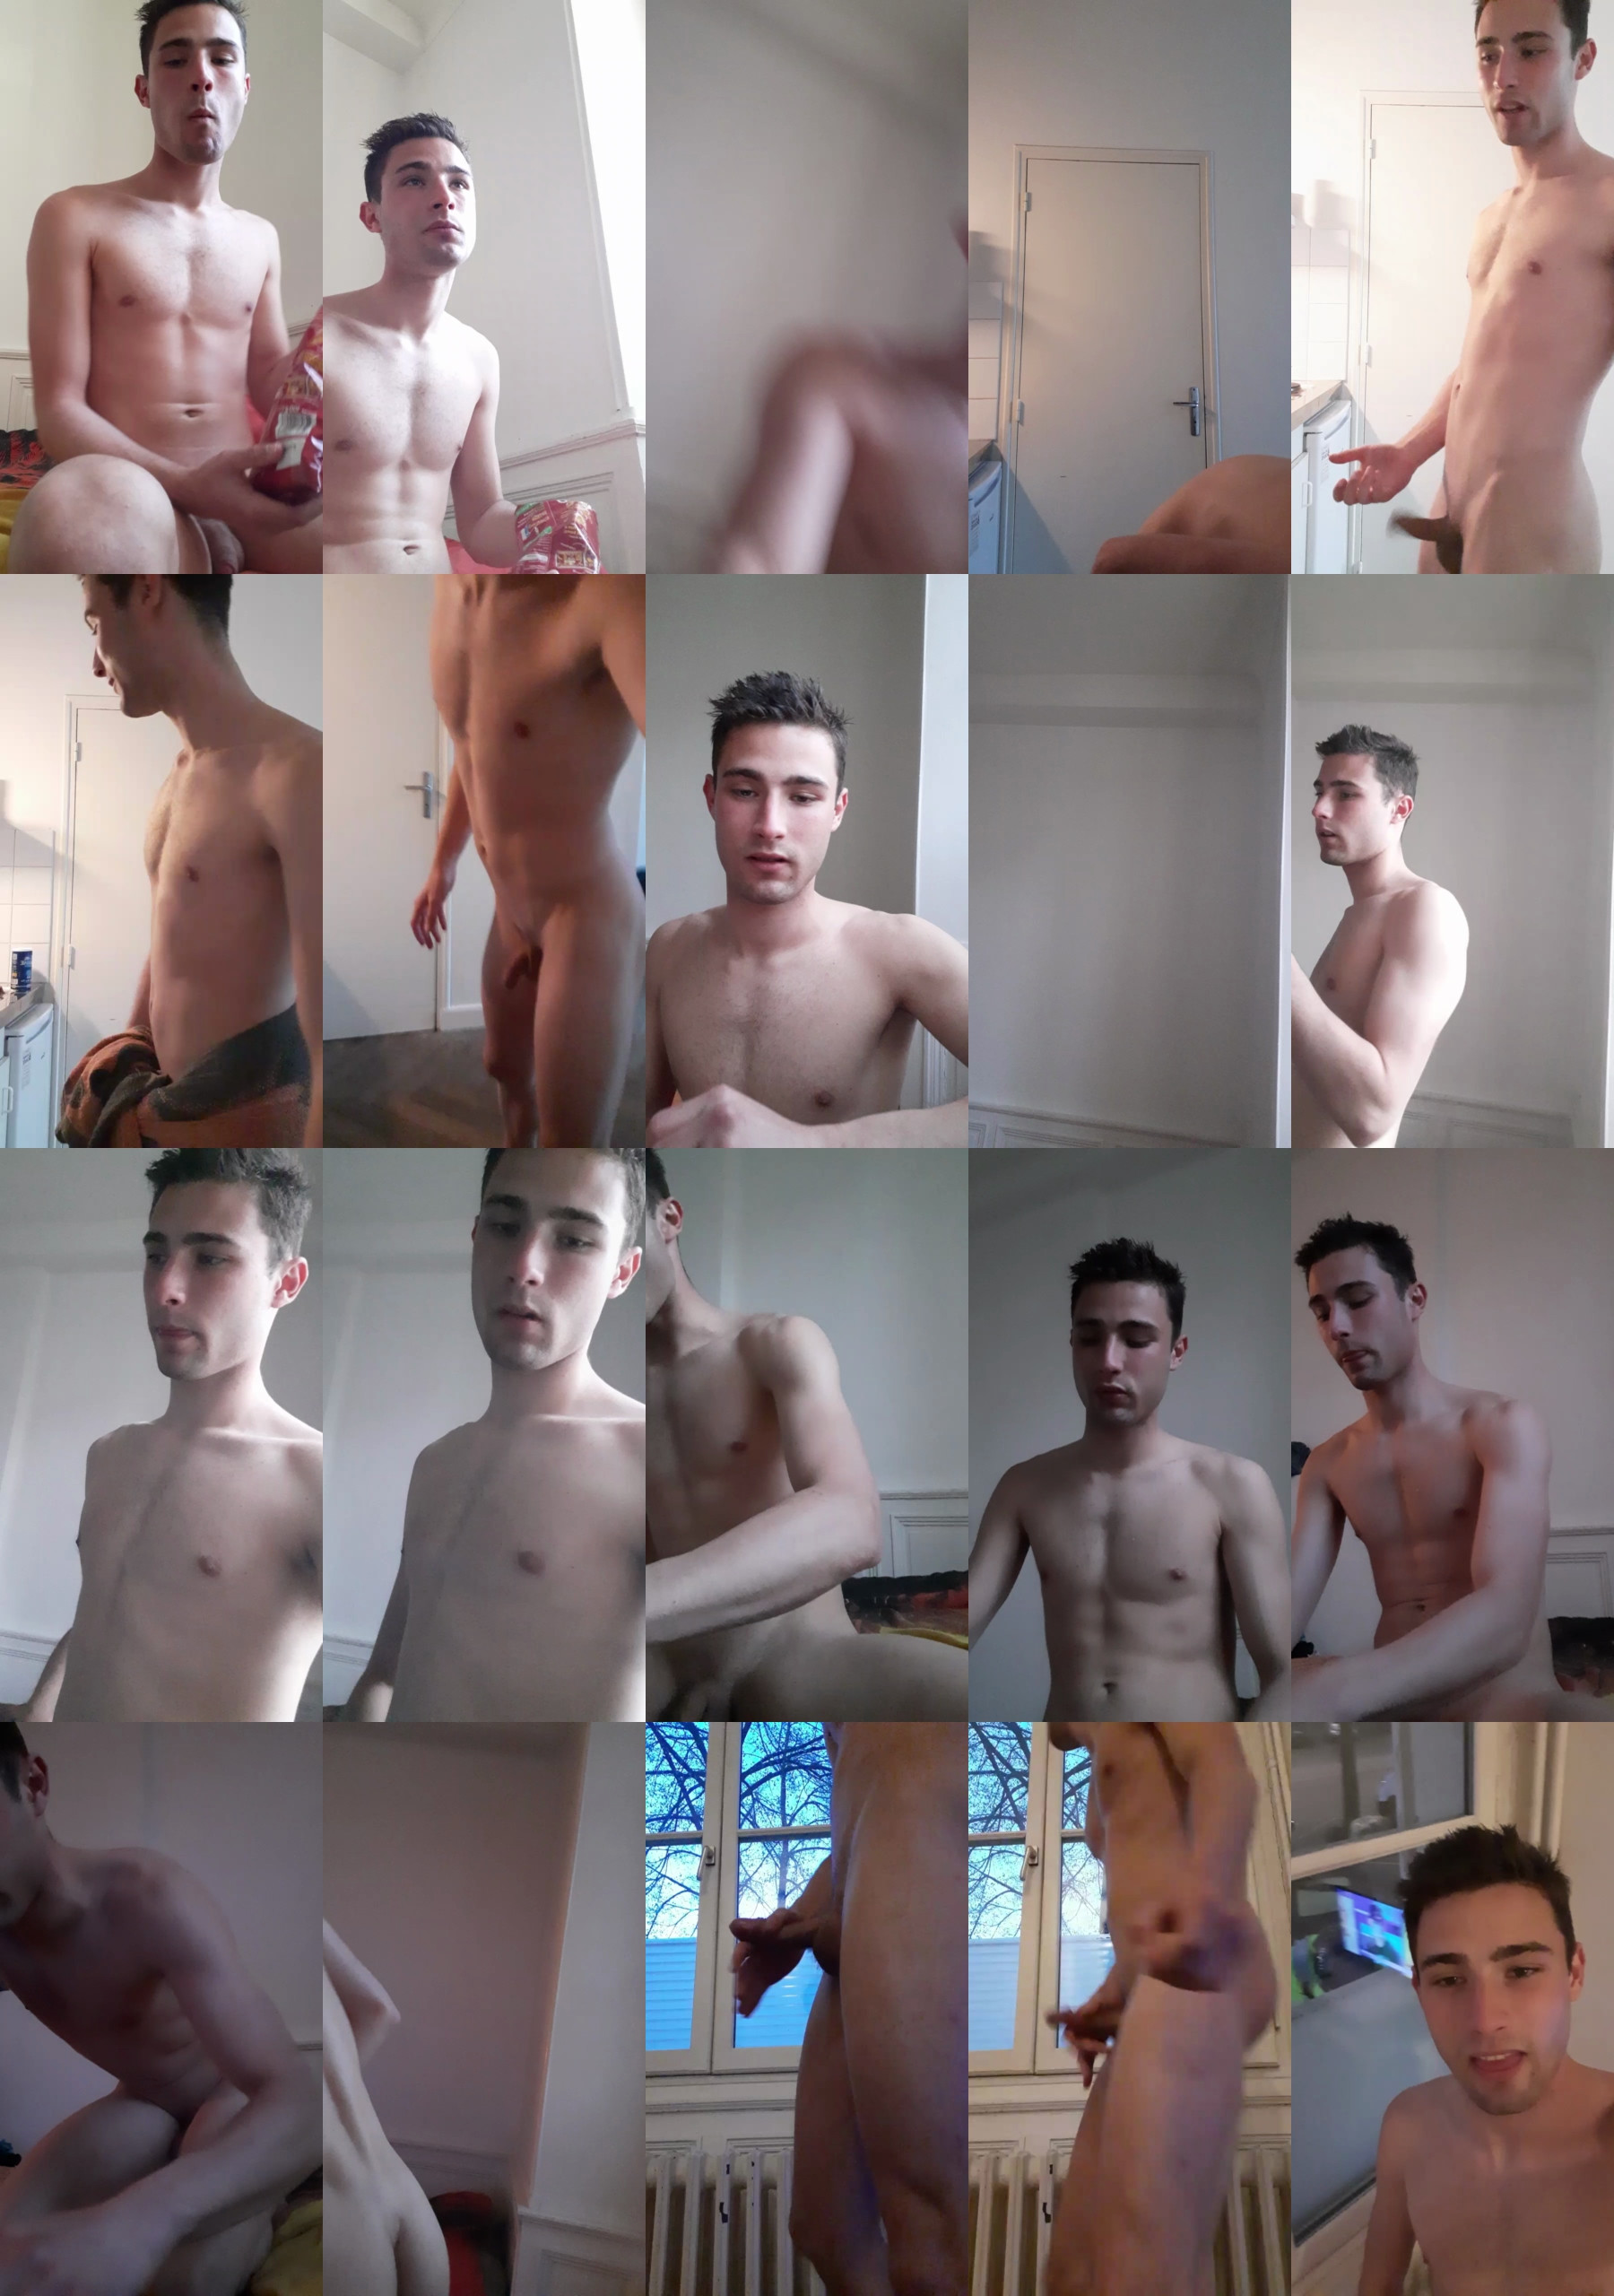 petitepute76 Cam4 07-04-2021 Recorded Video Show